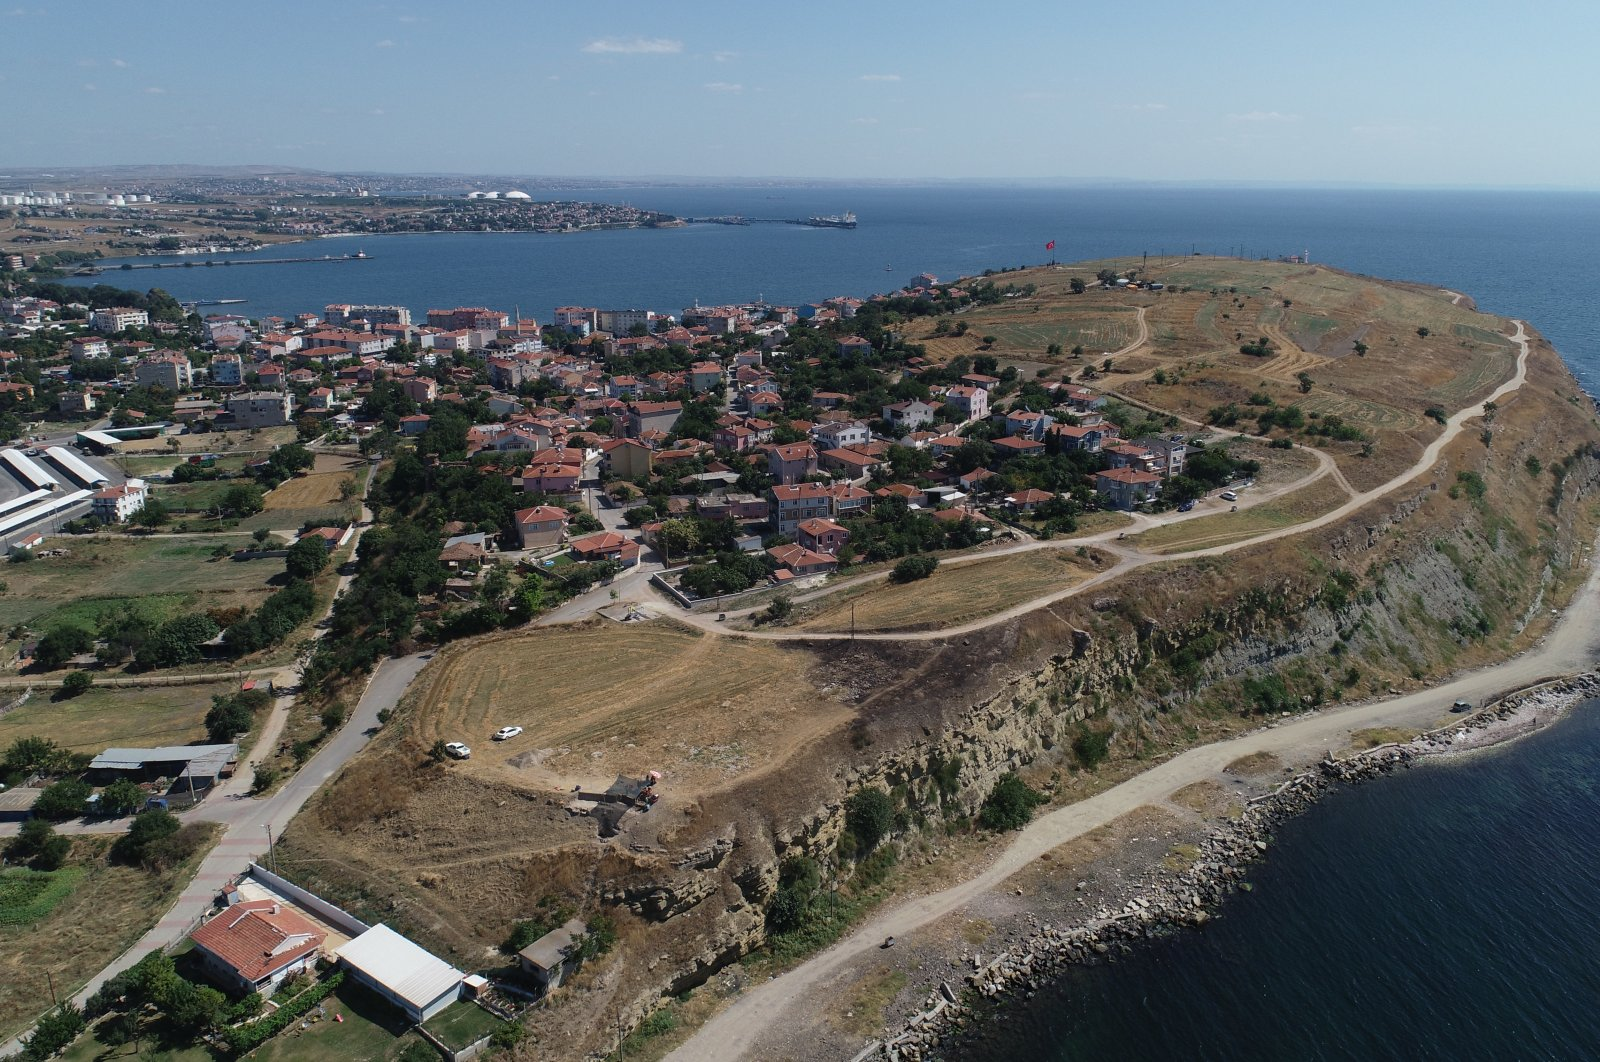 An aerial view from the ancient city of Perinthos, Tekirdağ, northwestern Turkey, August 20, 2021. (AA Photo)